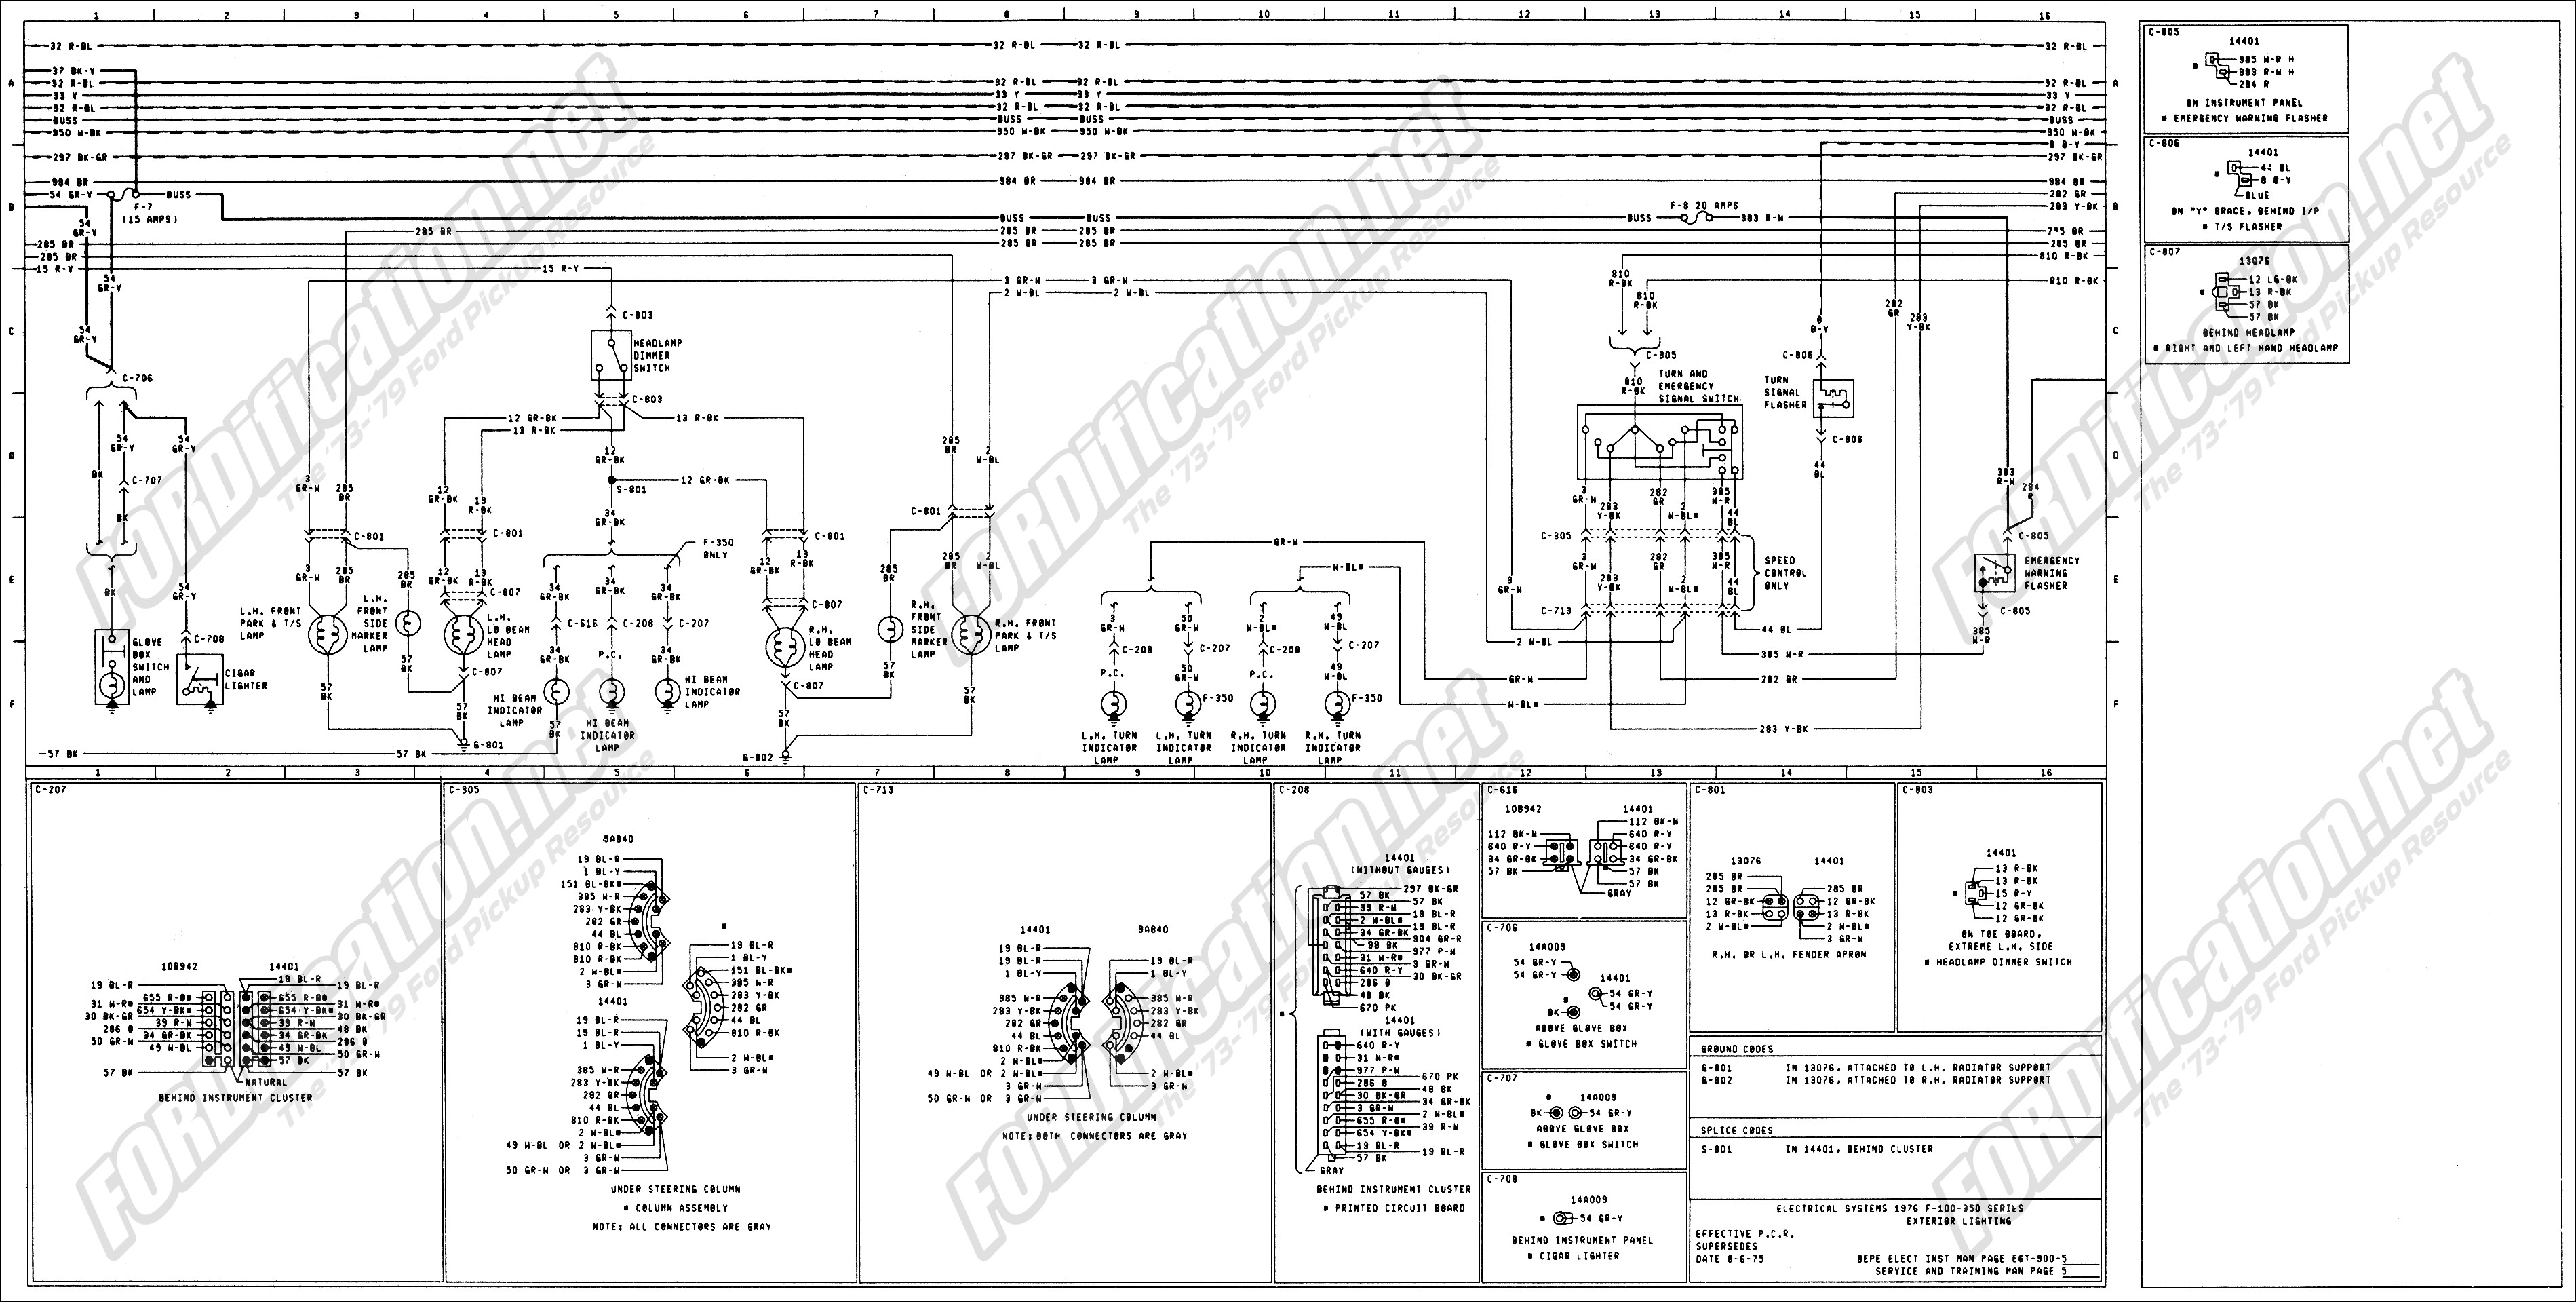 f150 wiring diagram welding generator 77 ford truck ignition best site harness